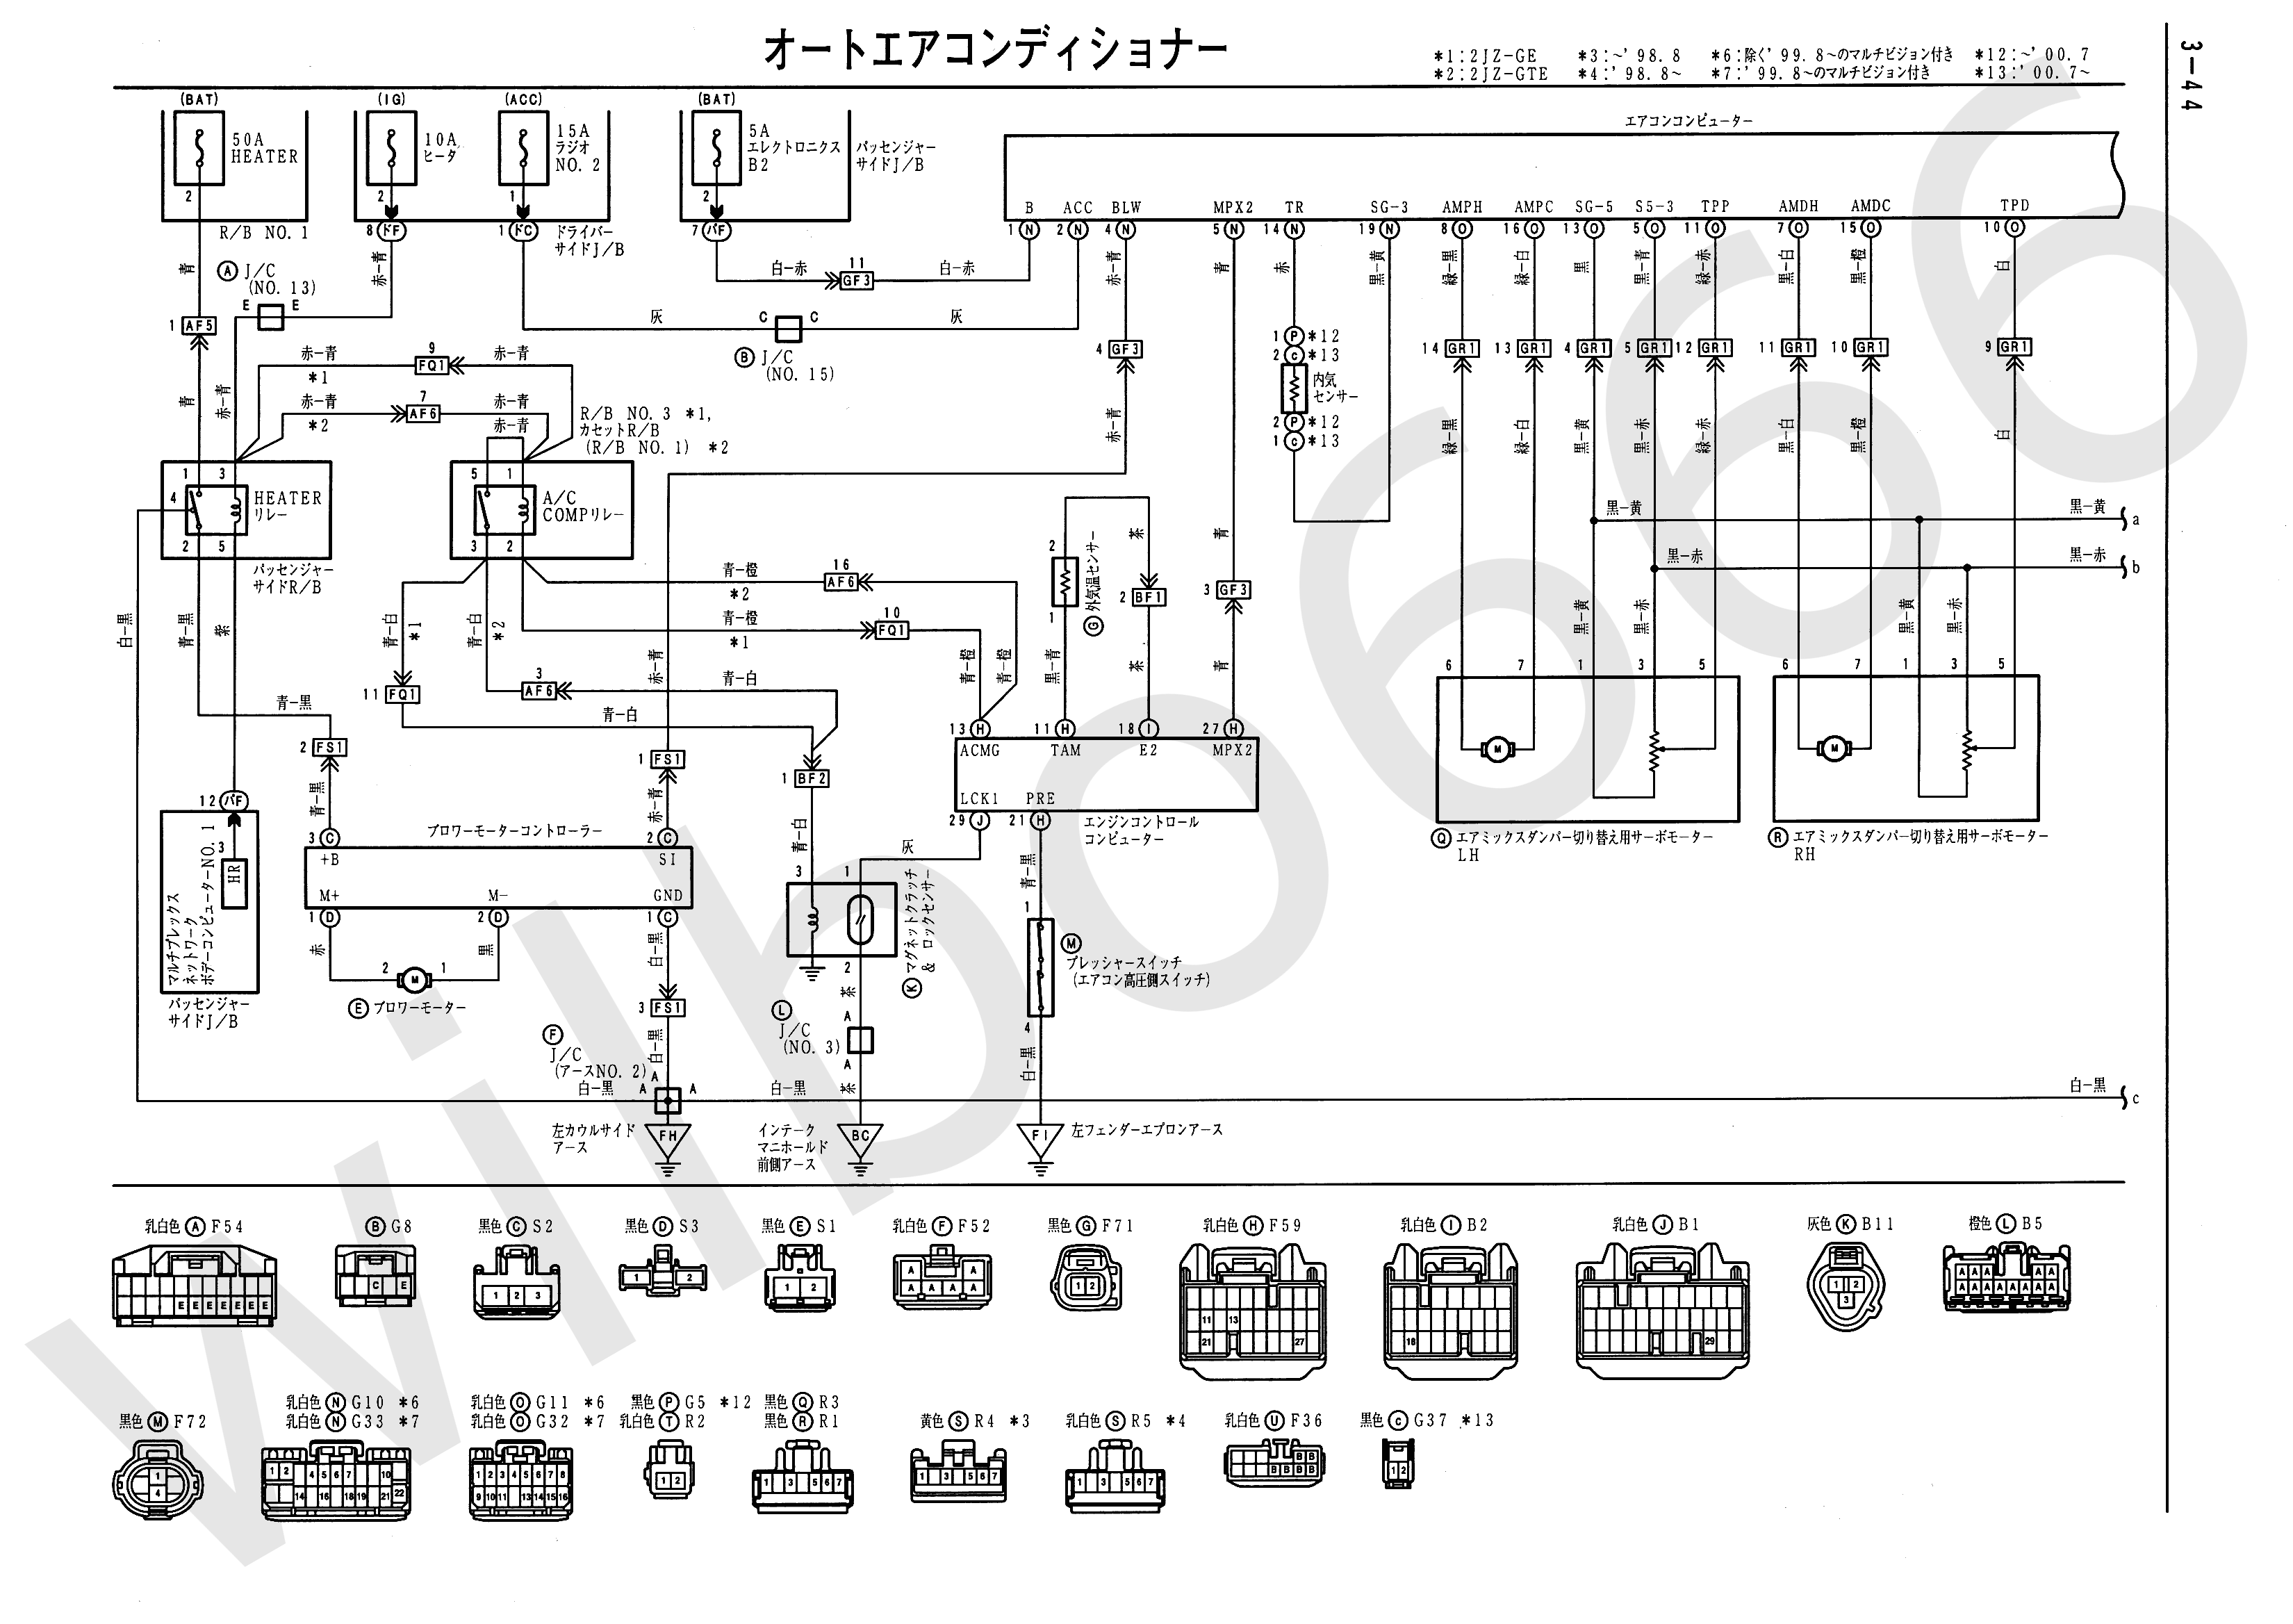 JZS161 Electrical Wiring Diagram 6748505 3 44 wilbo666 2jz gte vvti jzs161 aristo engine wiring 1jz vvti wiring diagram pdf at couponss.co